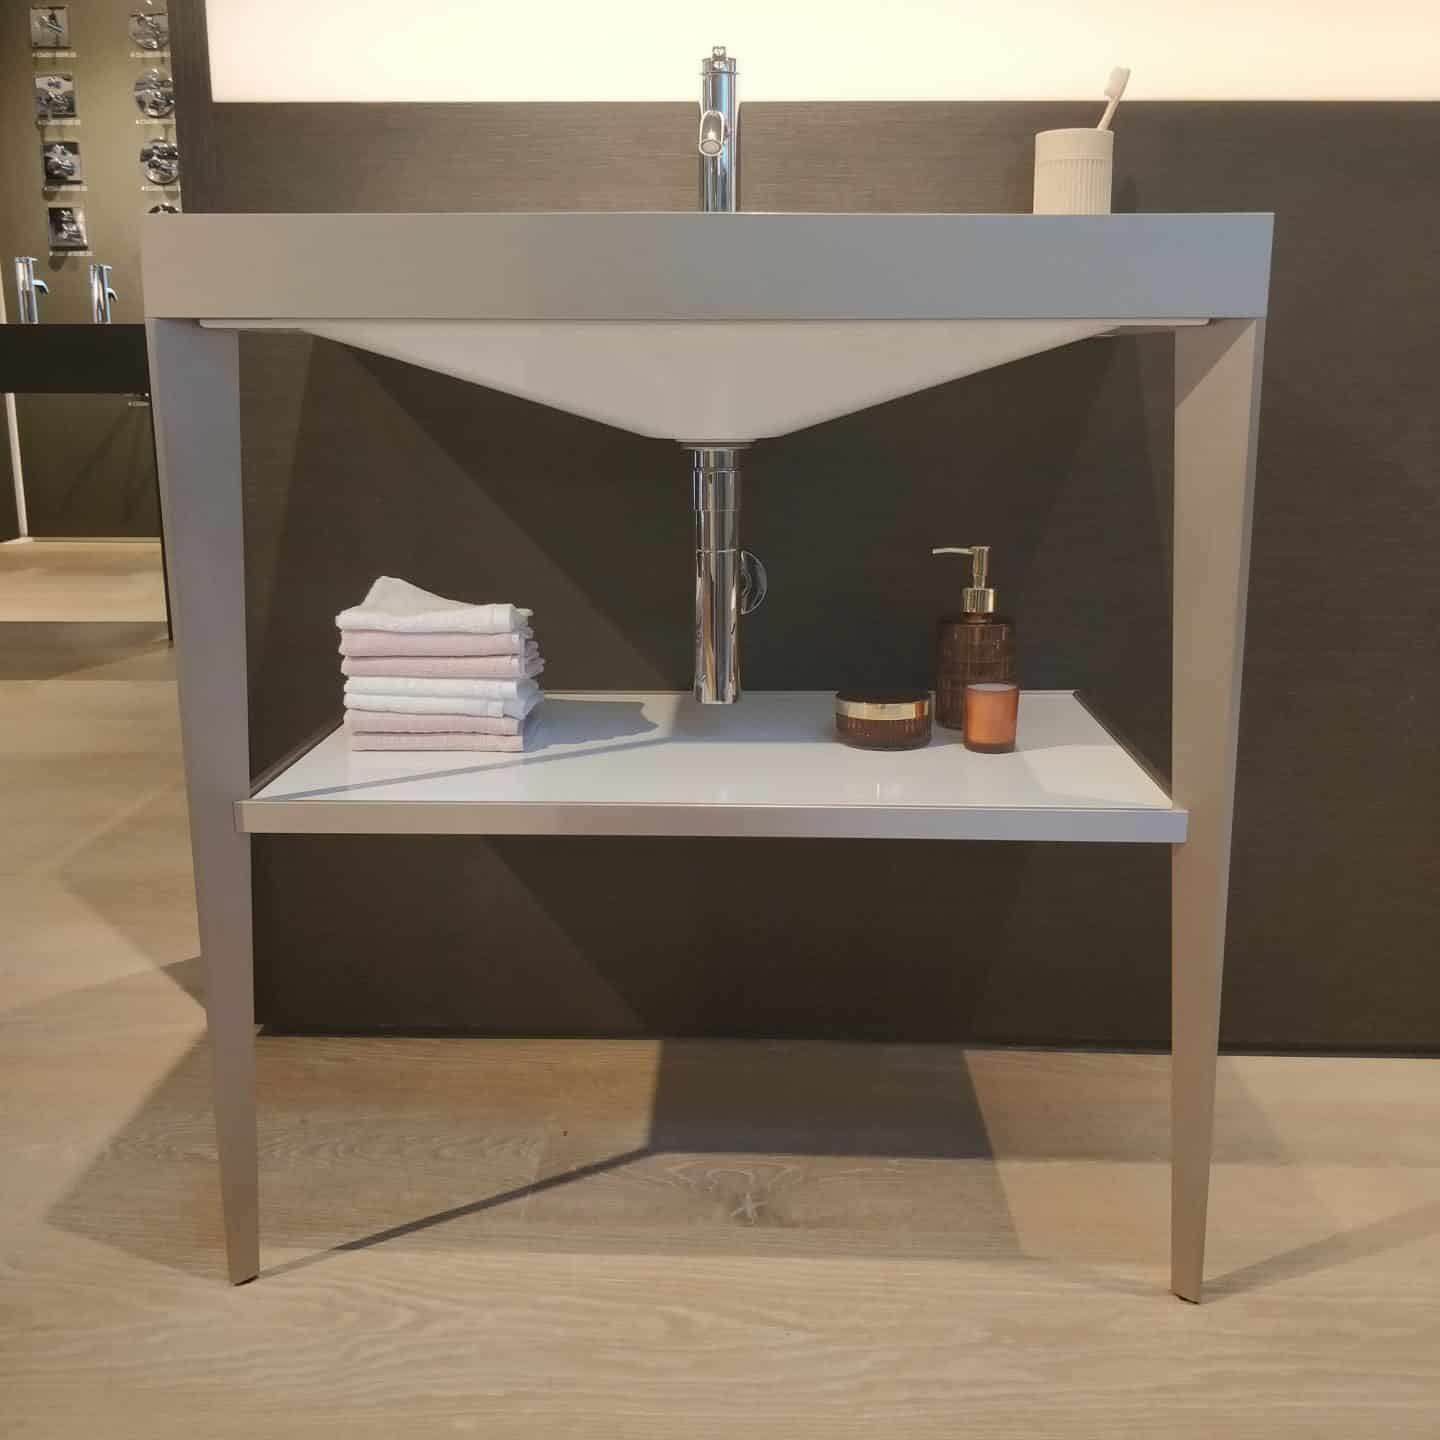 Viu / XViu washbasin in the Duravit Showroom in Clerkenwell